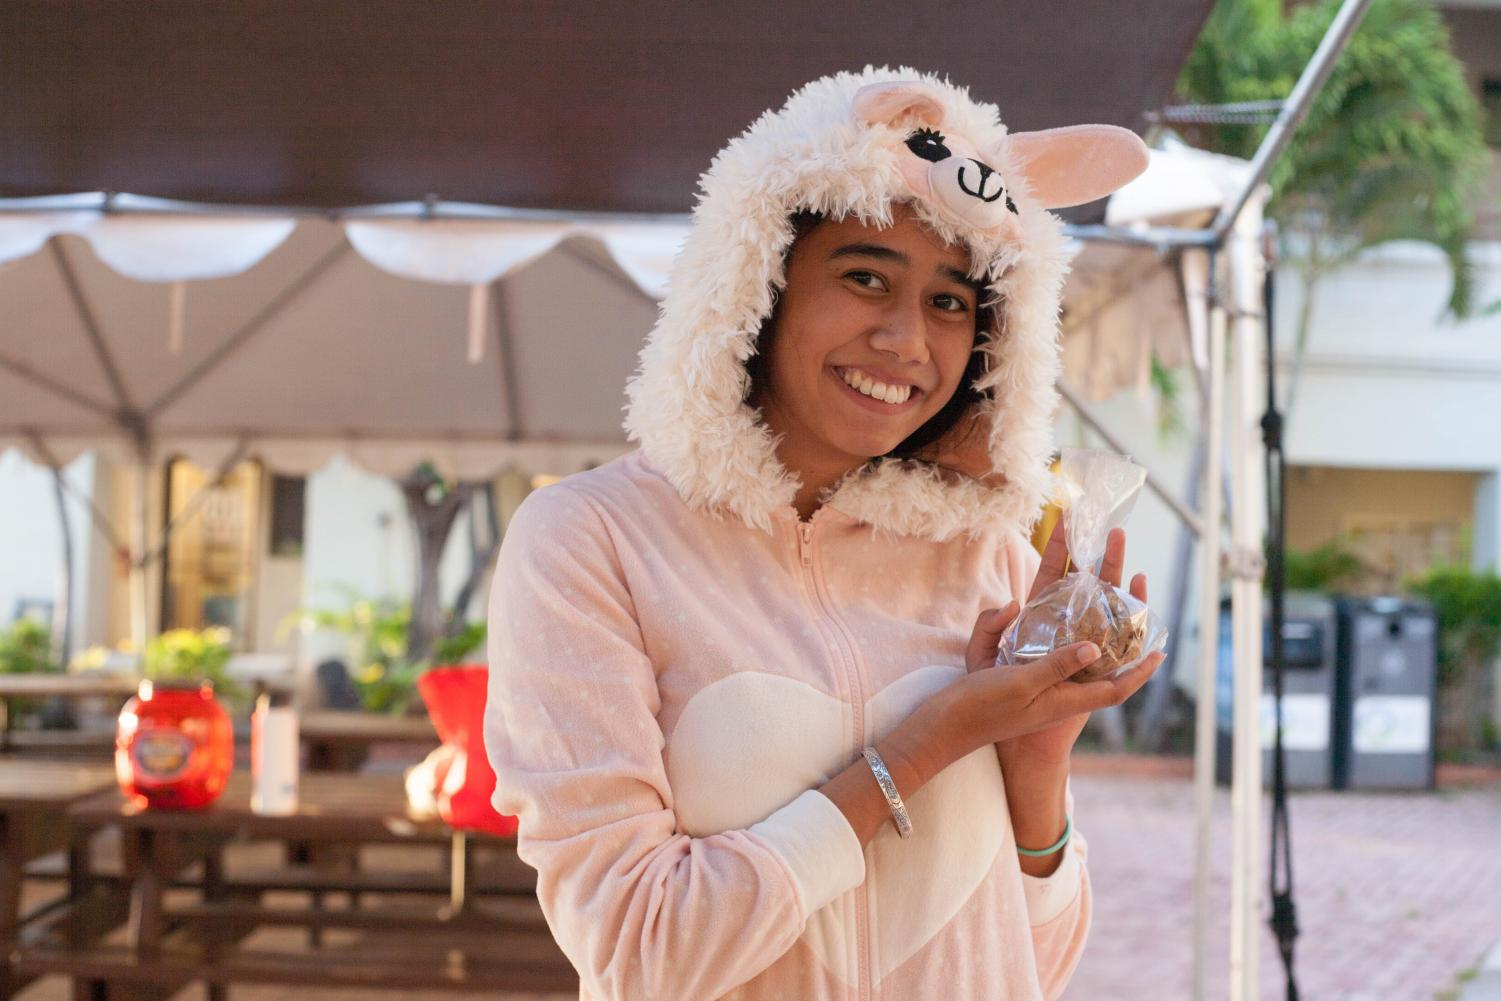 Kaohi Gomera dressed up as a lamb for Halloween and showed one of the treats for sale at the RHA booth.